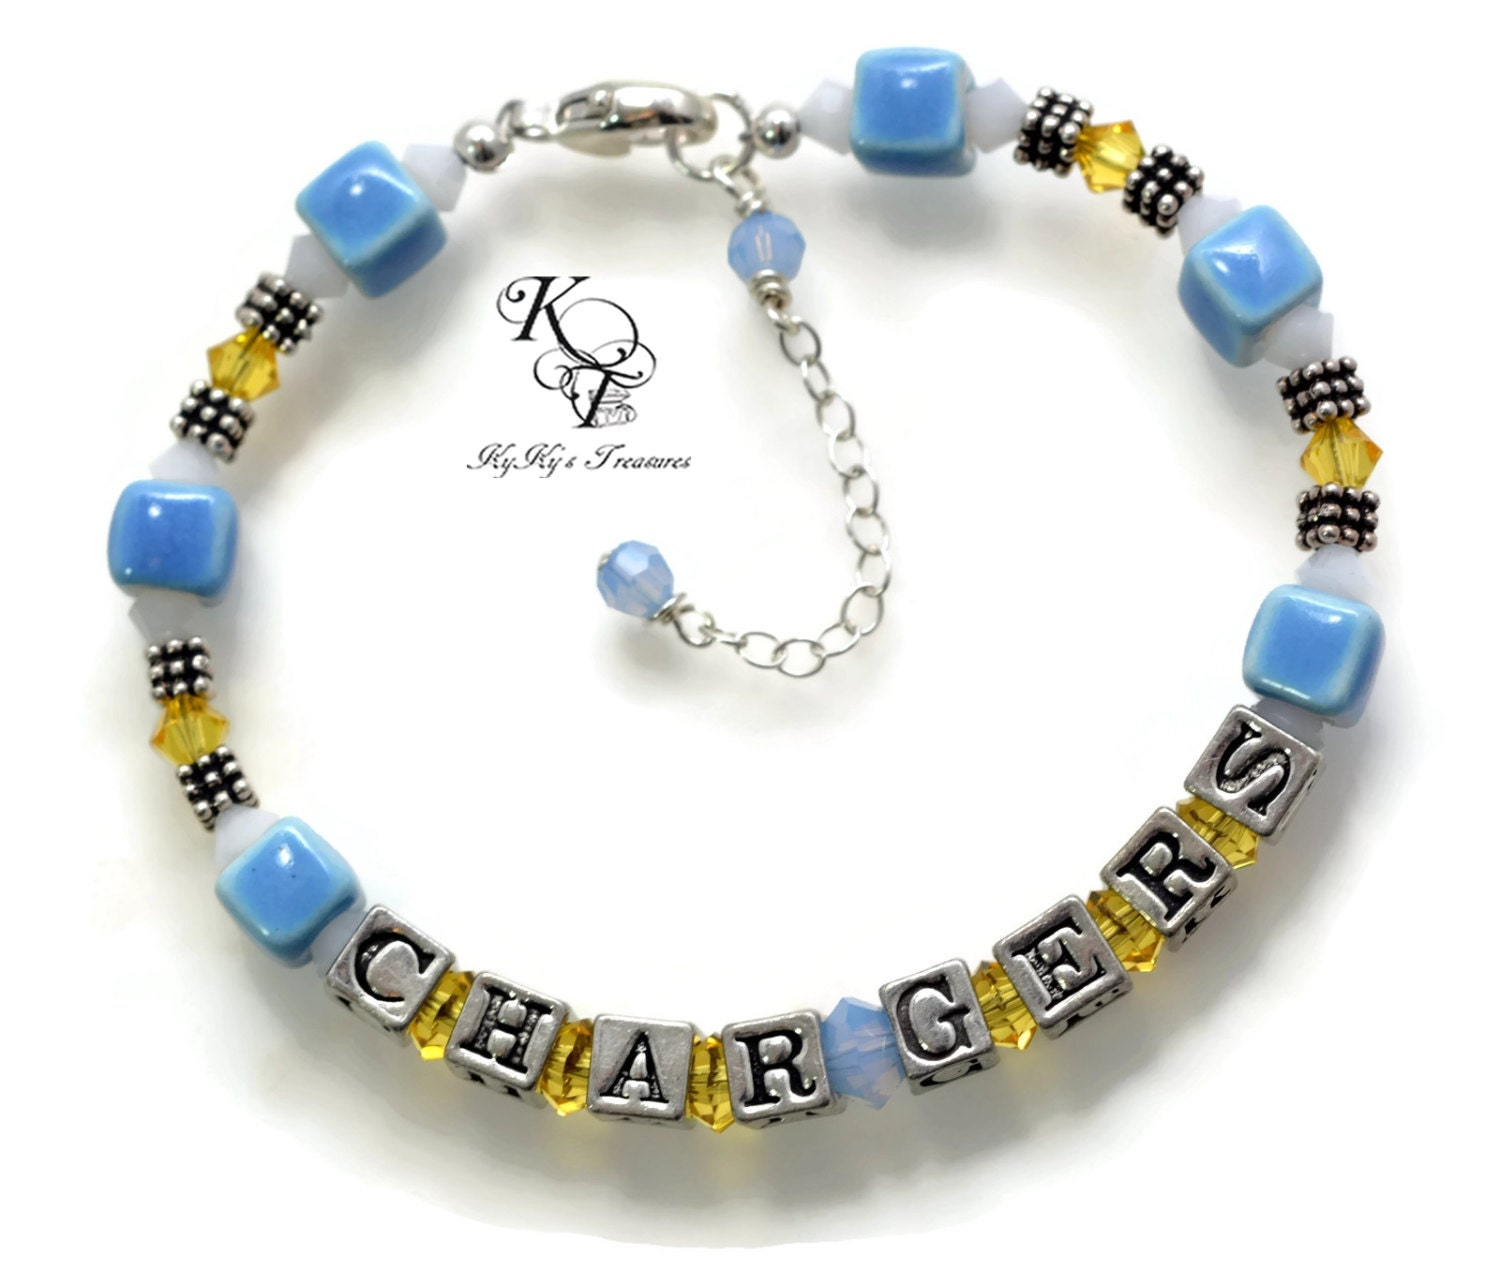 San diego chargers bracelet chargers jewelry by for Jewelry making classes san diego